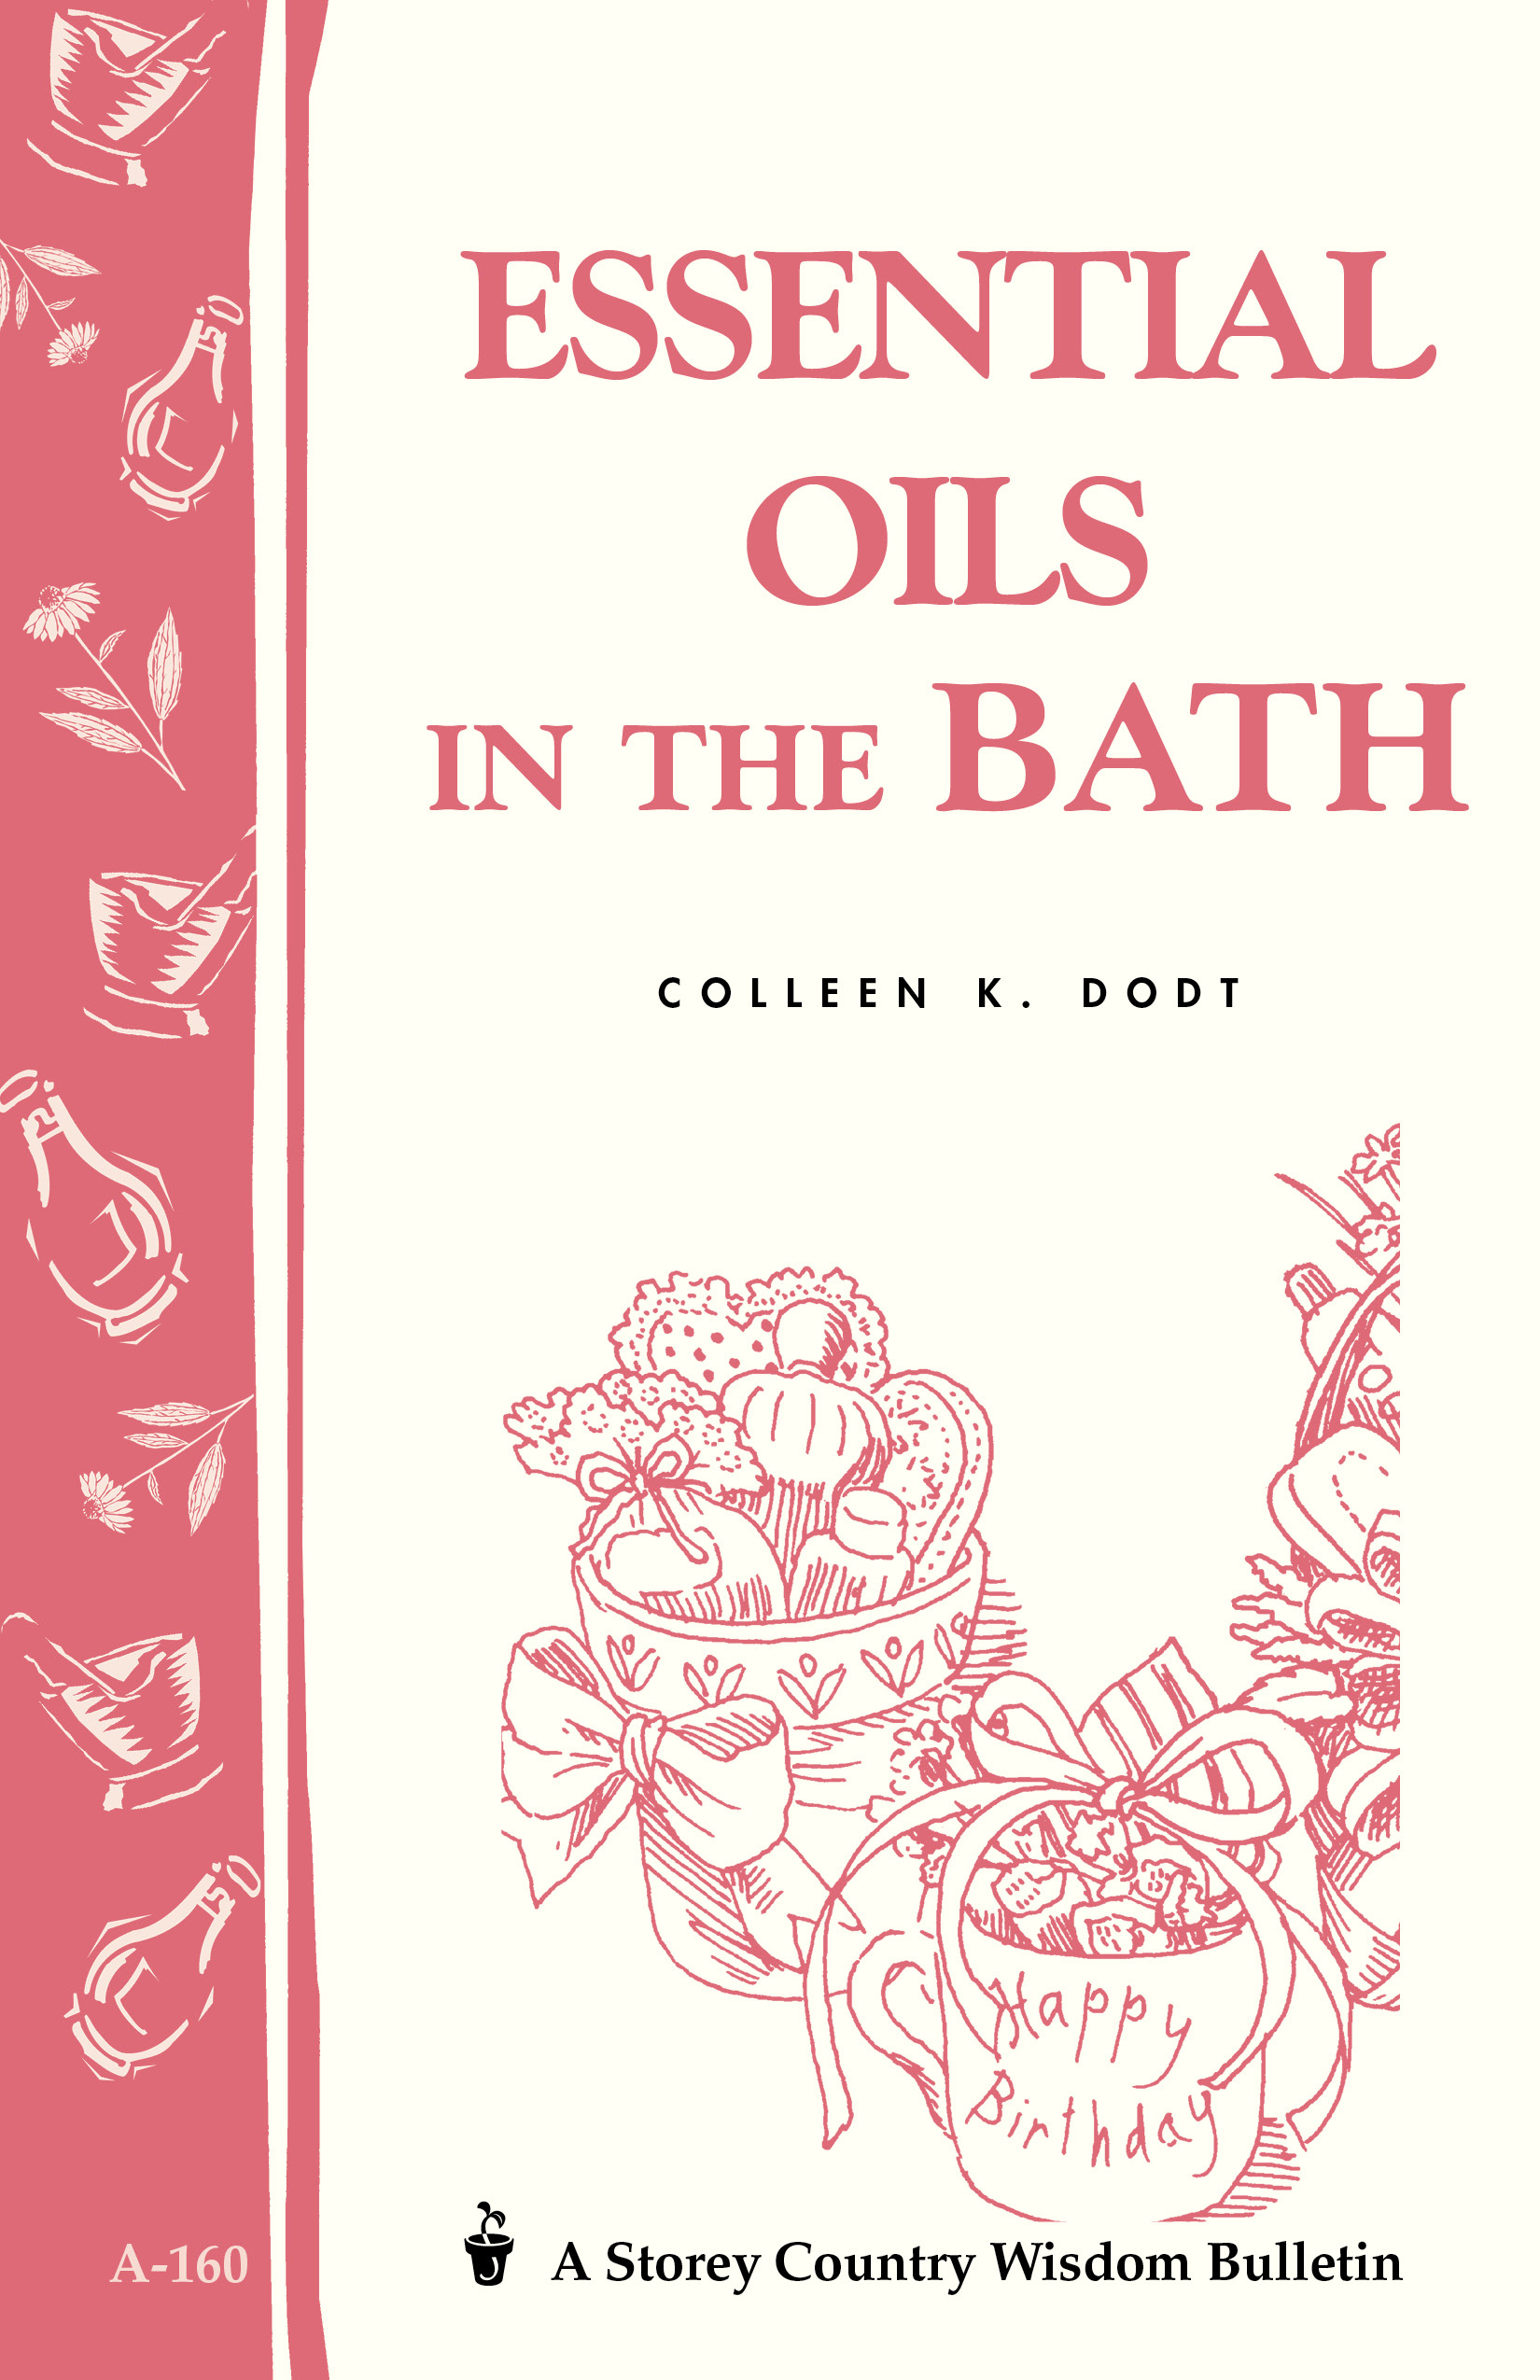 Essential Oils in the Bath Storey's Country Wisdom Bulletin A-160 - Colleen K. Dodt